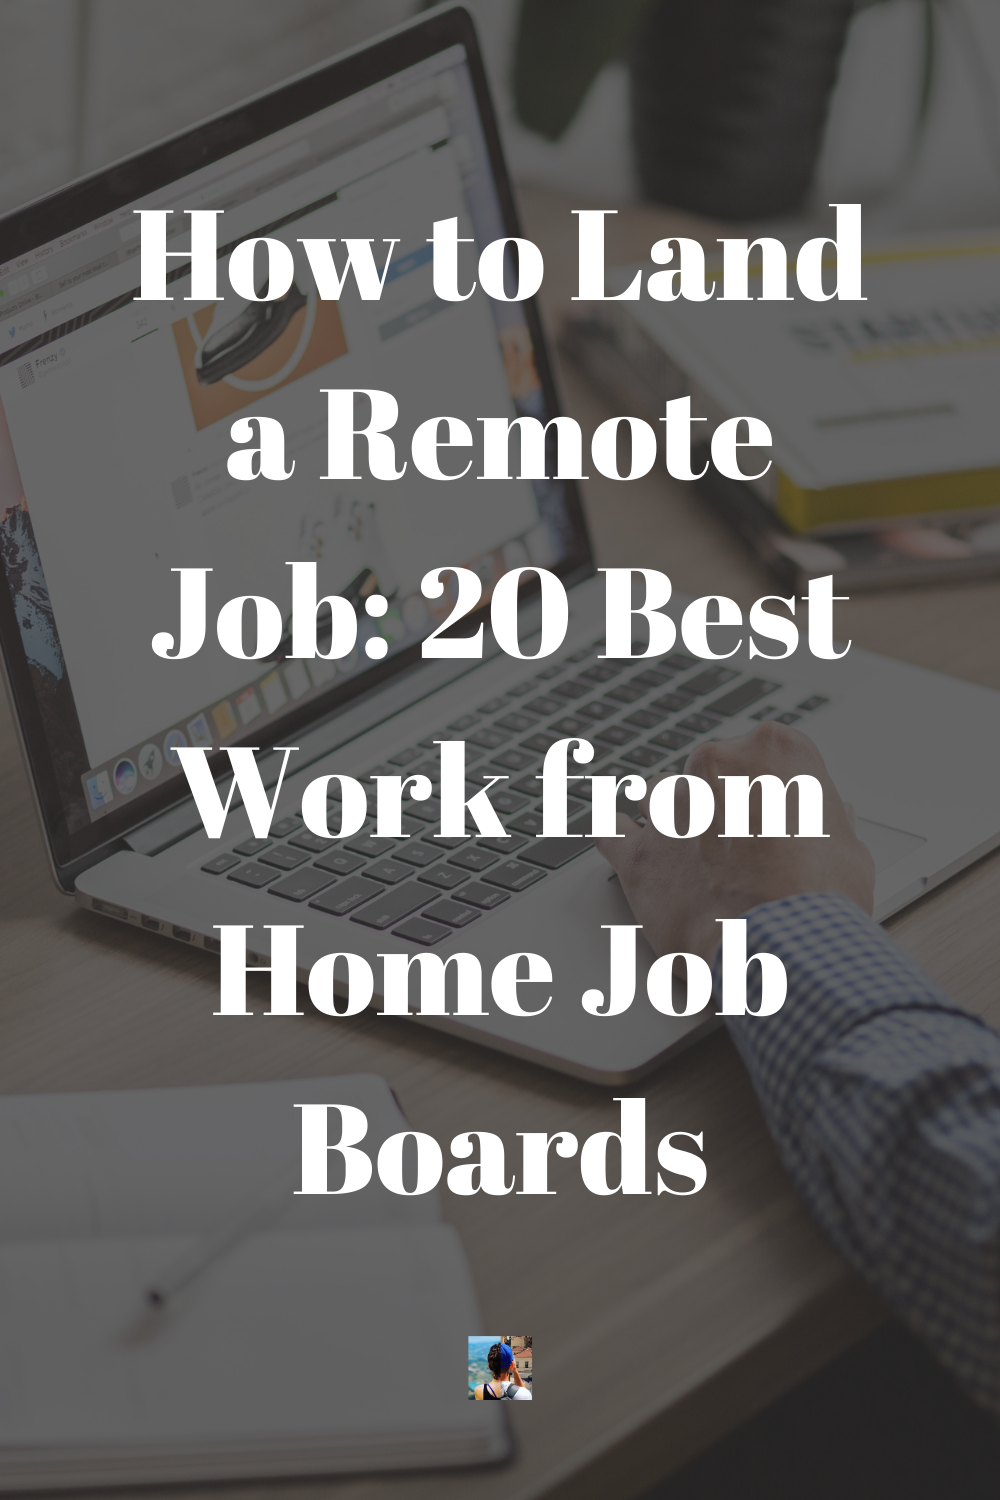 20 Of The Best Work From Home Job Boards 2020 Job Board Work From Home Jobs Working From Home